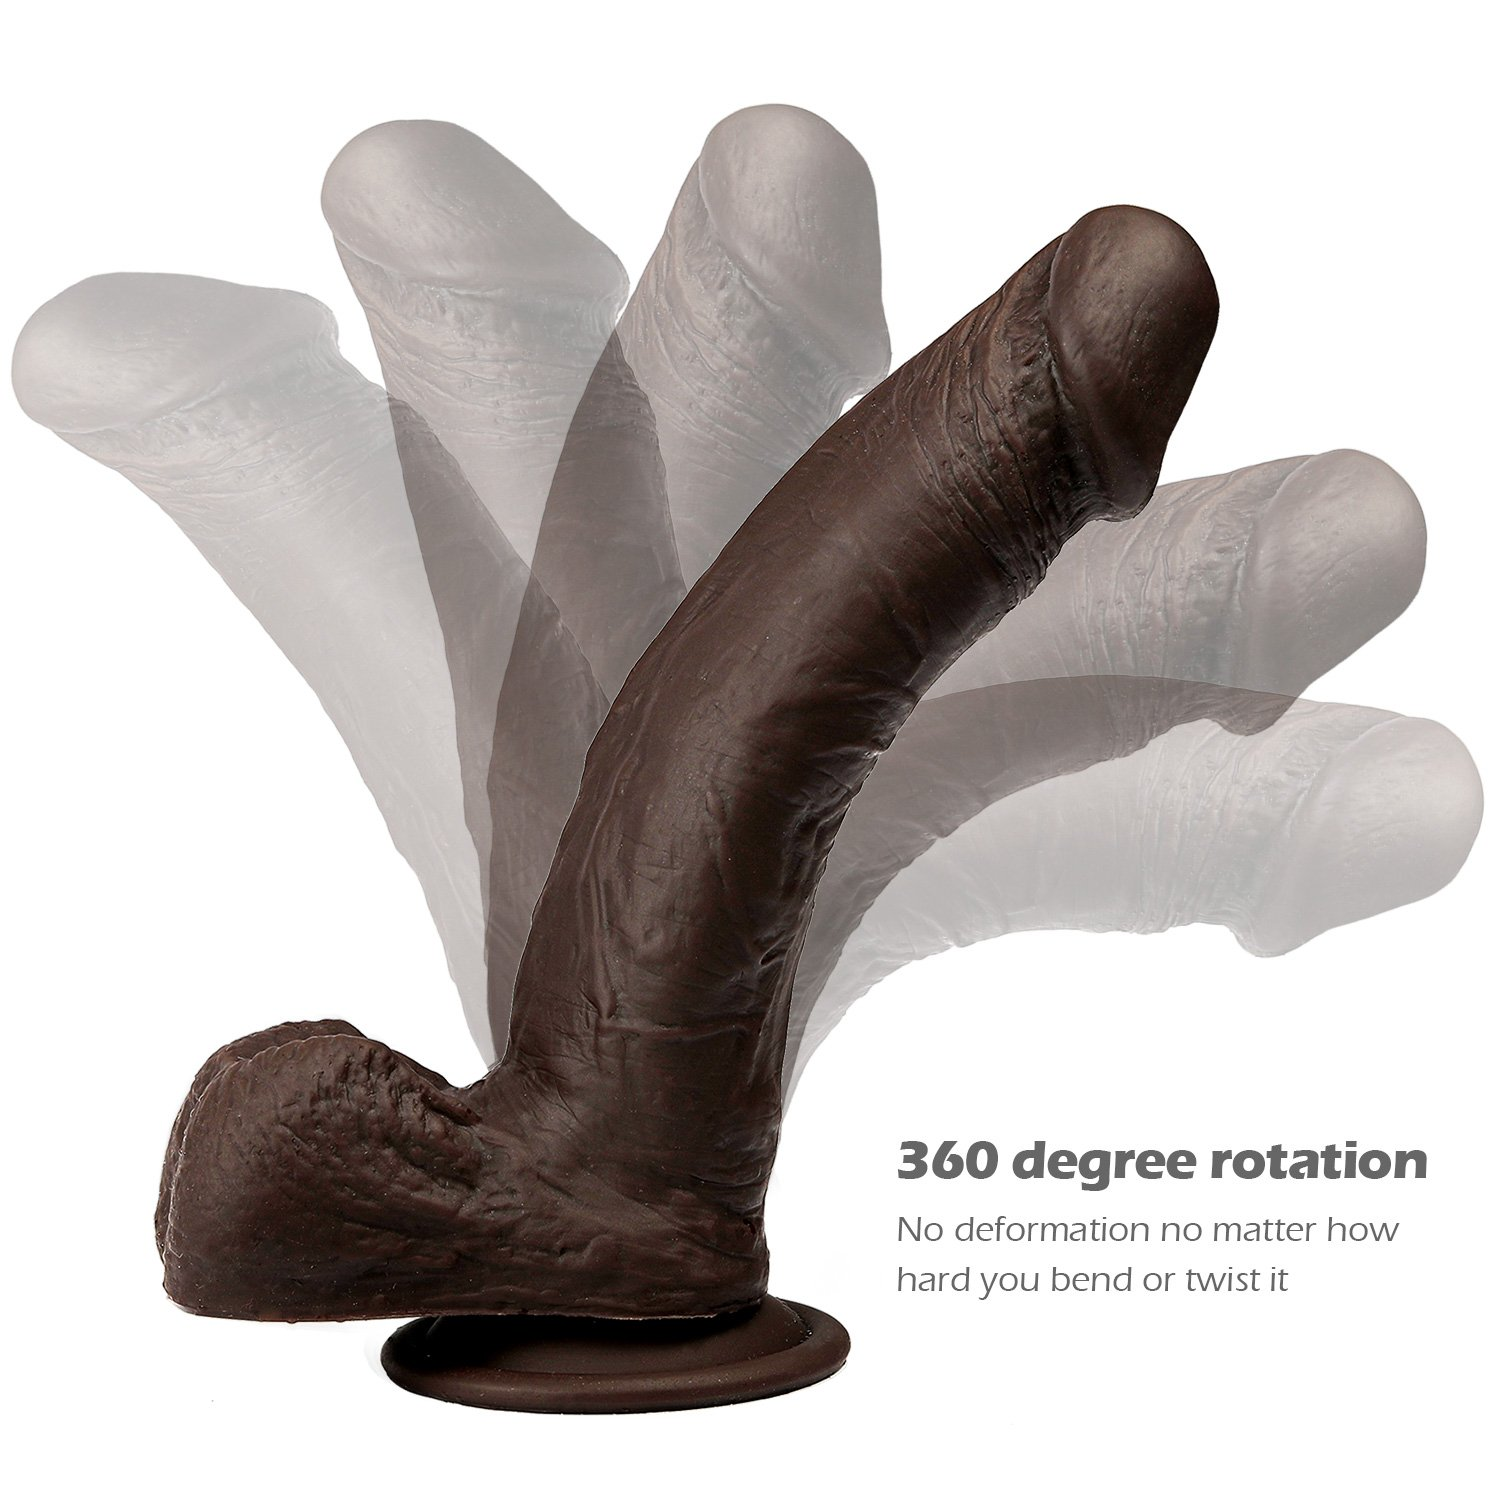 8 Inch Realistic Silicone Dildo with Strong Suction Cup for Female, LUV-SPOT Hands-Free Lifelike Penis Adult Sex Play for Women and Couples by LUV-SPOT (Image #7)